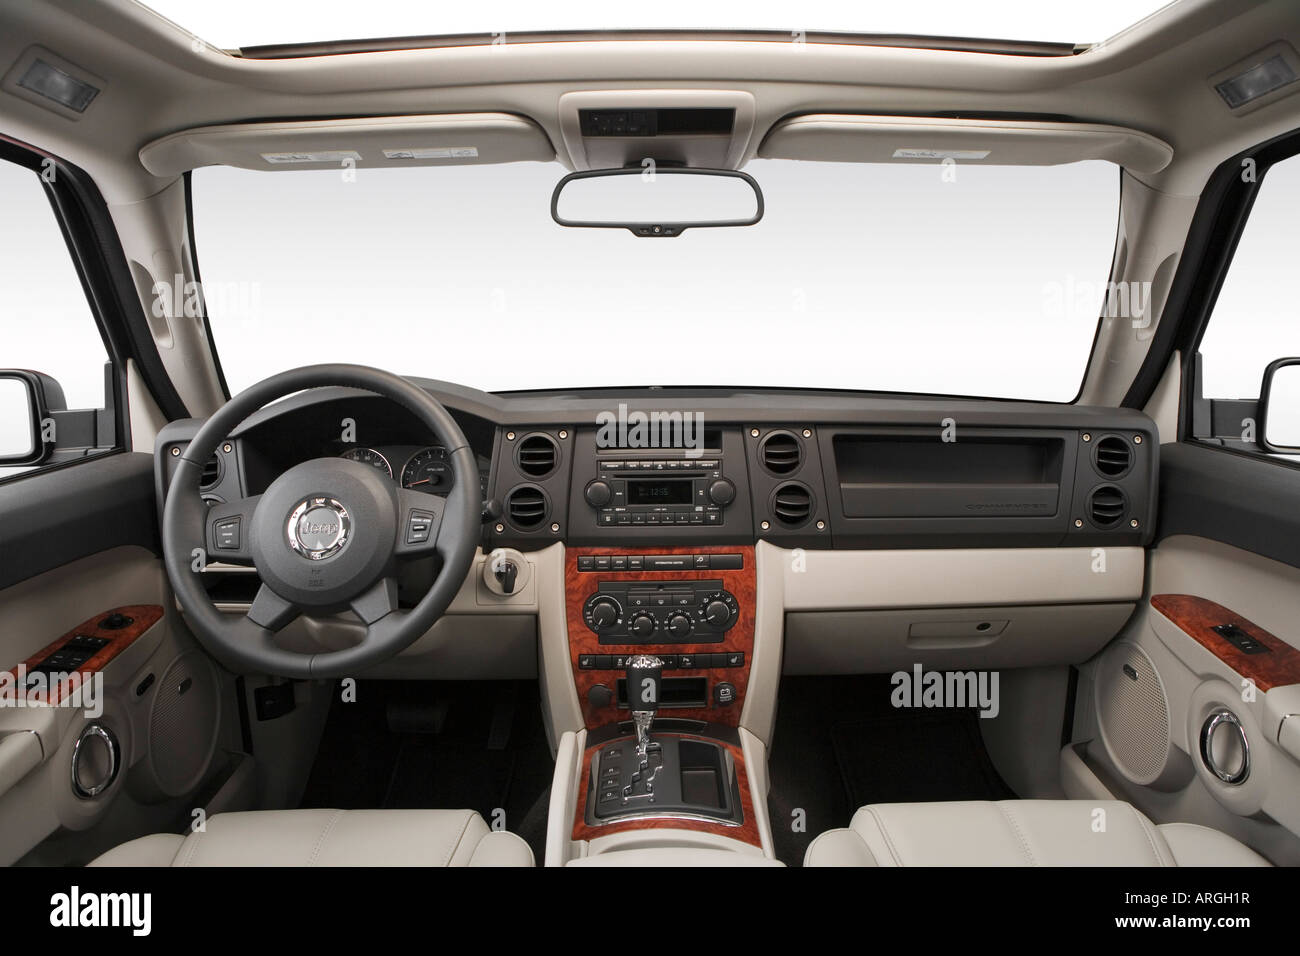 2007 jeep commander limited in green - dashboard, center console